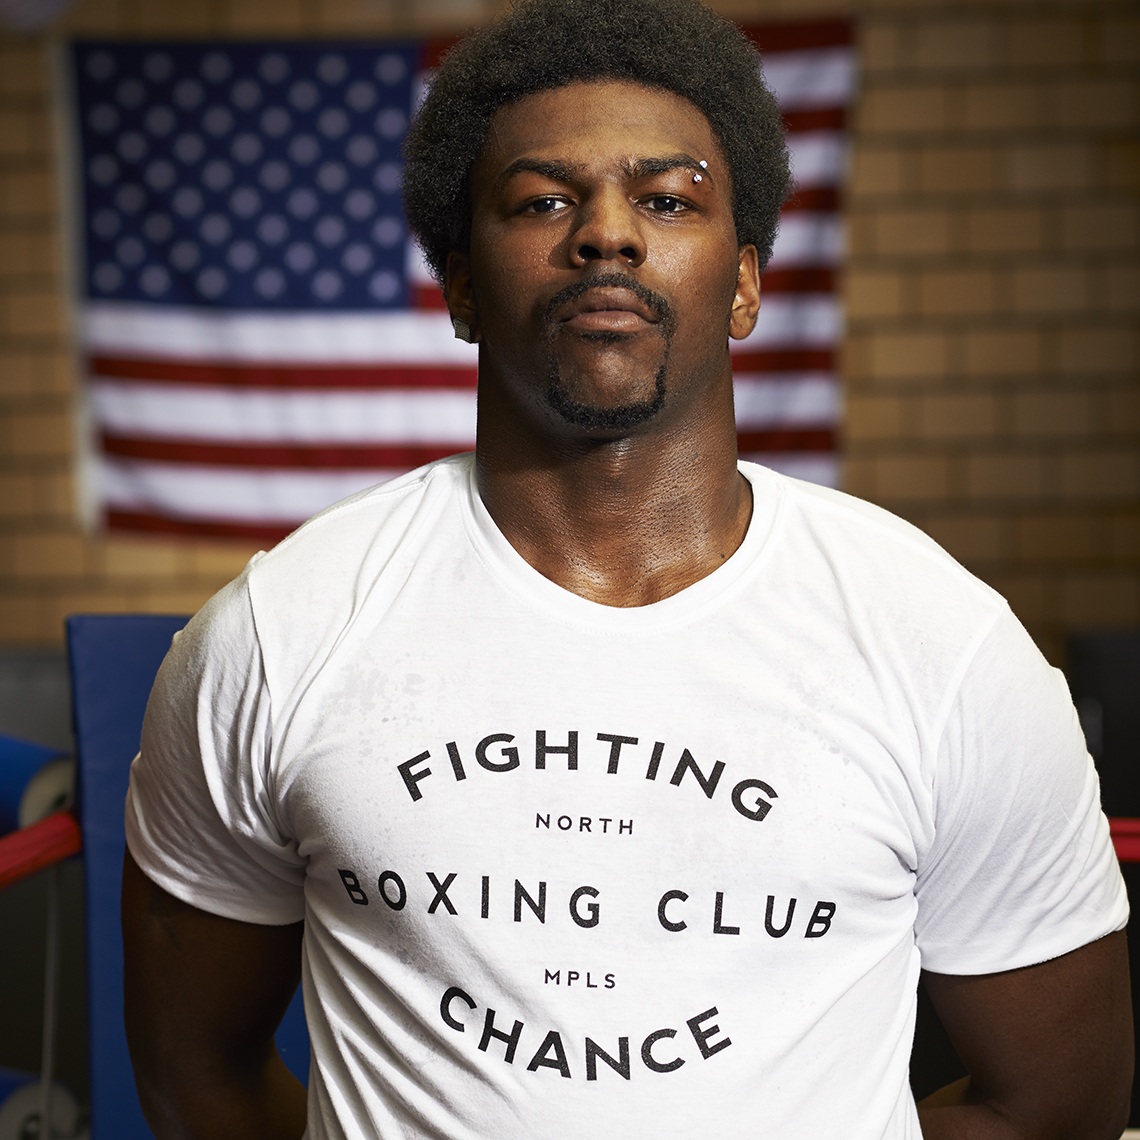 Seriously tough Fighting Chance Boxing Club